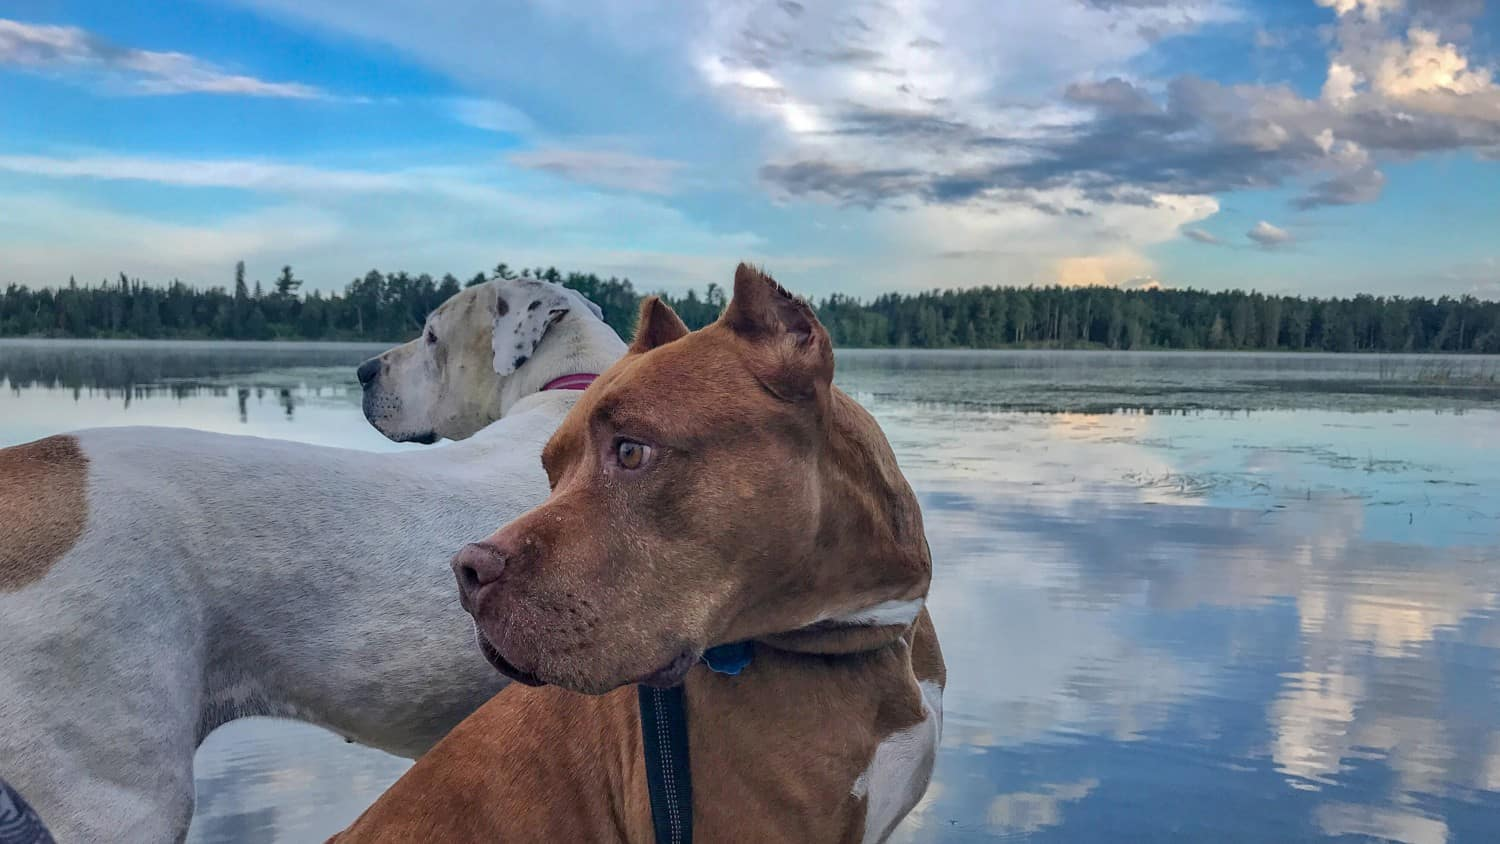 Two dogs admiring the view at pet friendly Itasca State Park in Minnesota